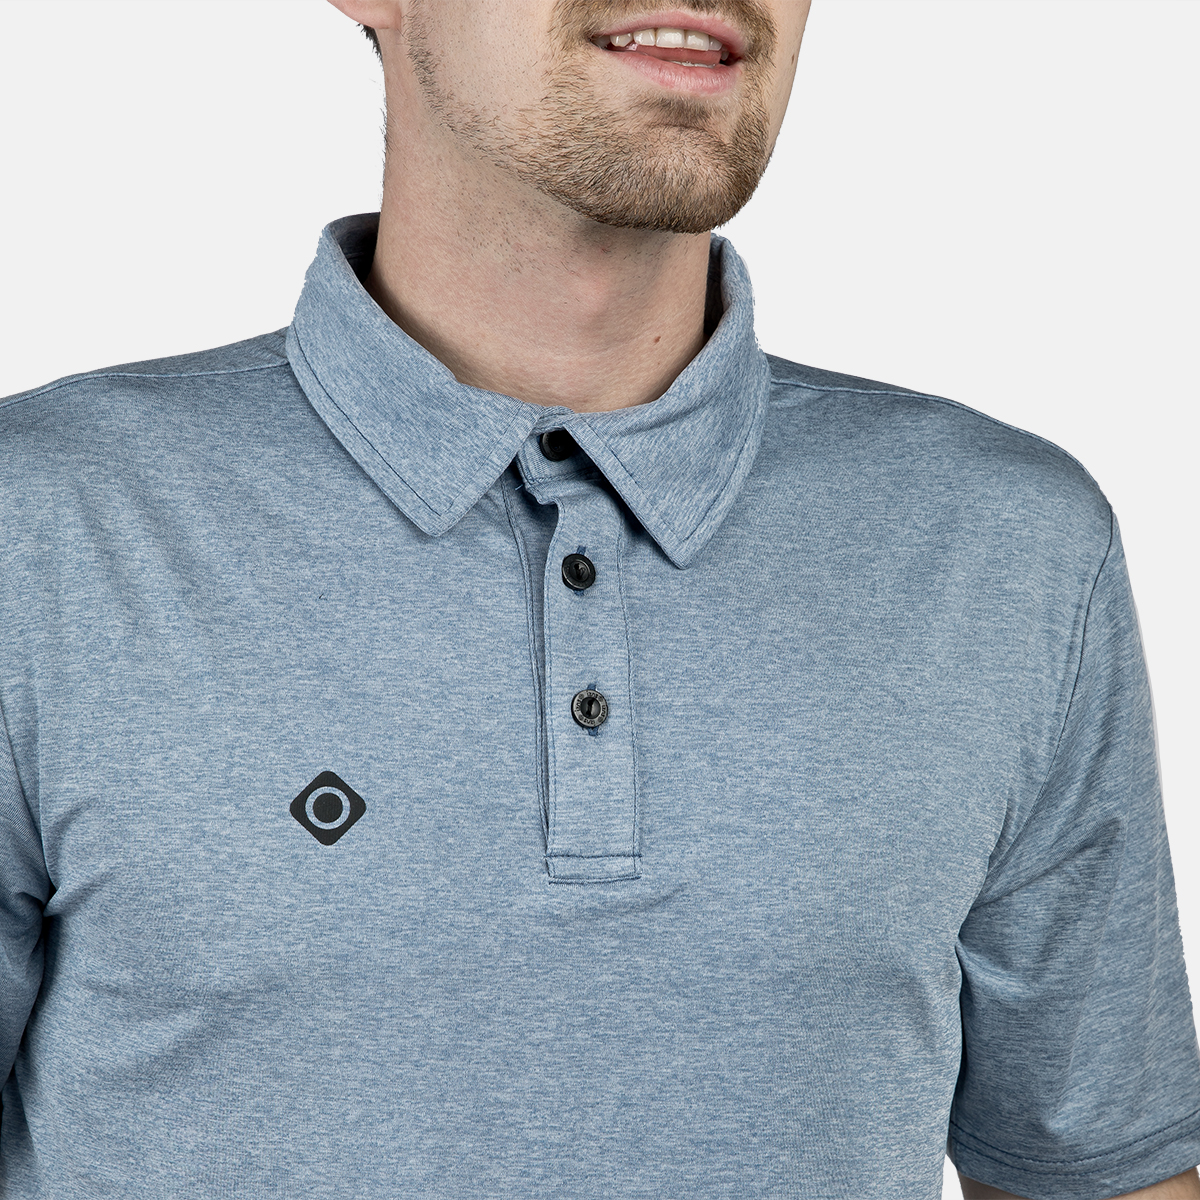 MAN'S CHASE POLO BLUE